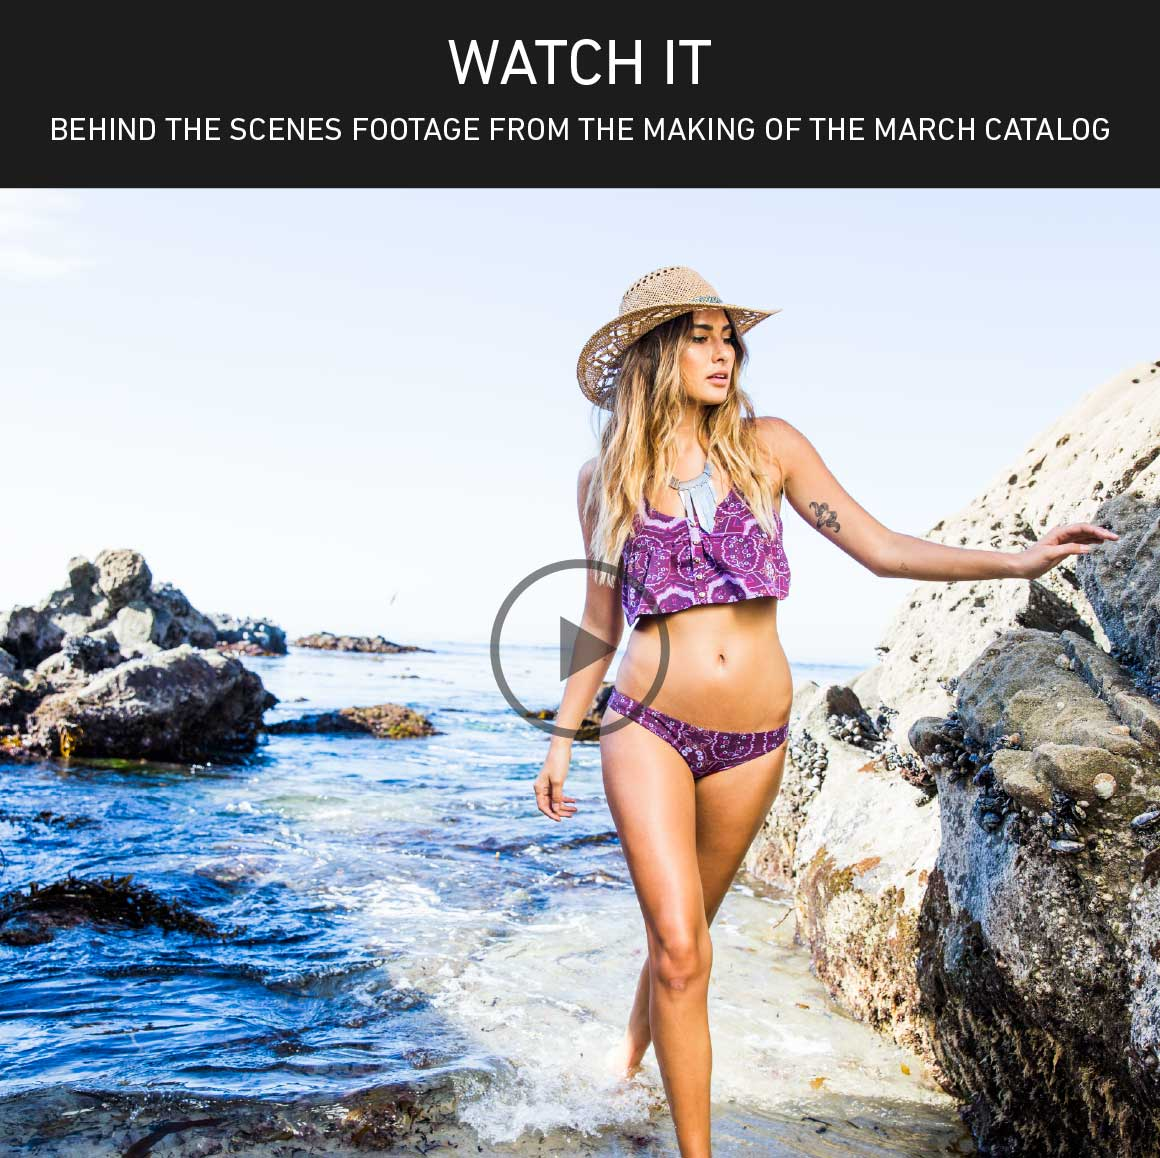 Watch It: Behind the Scenes from the March Catalog